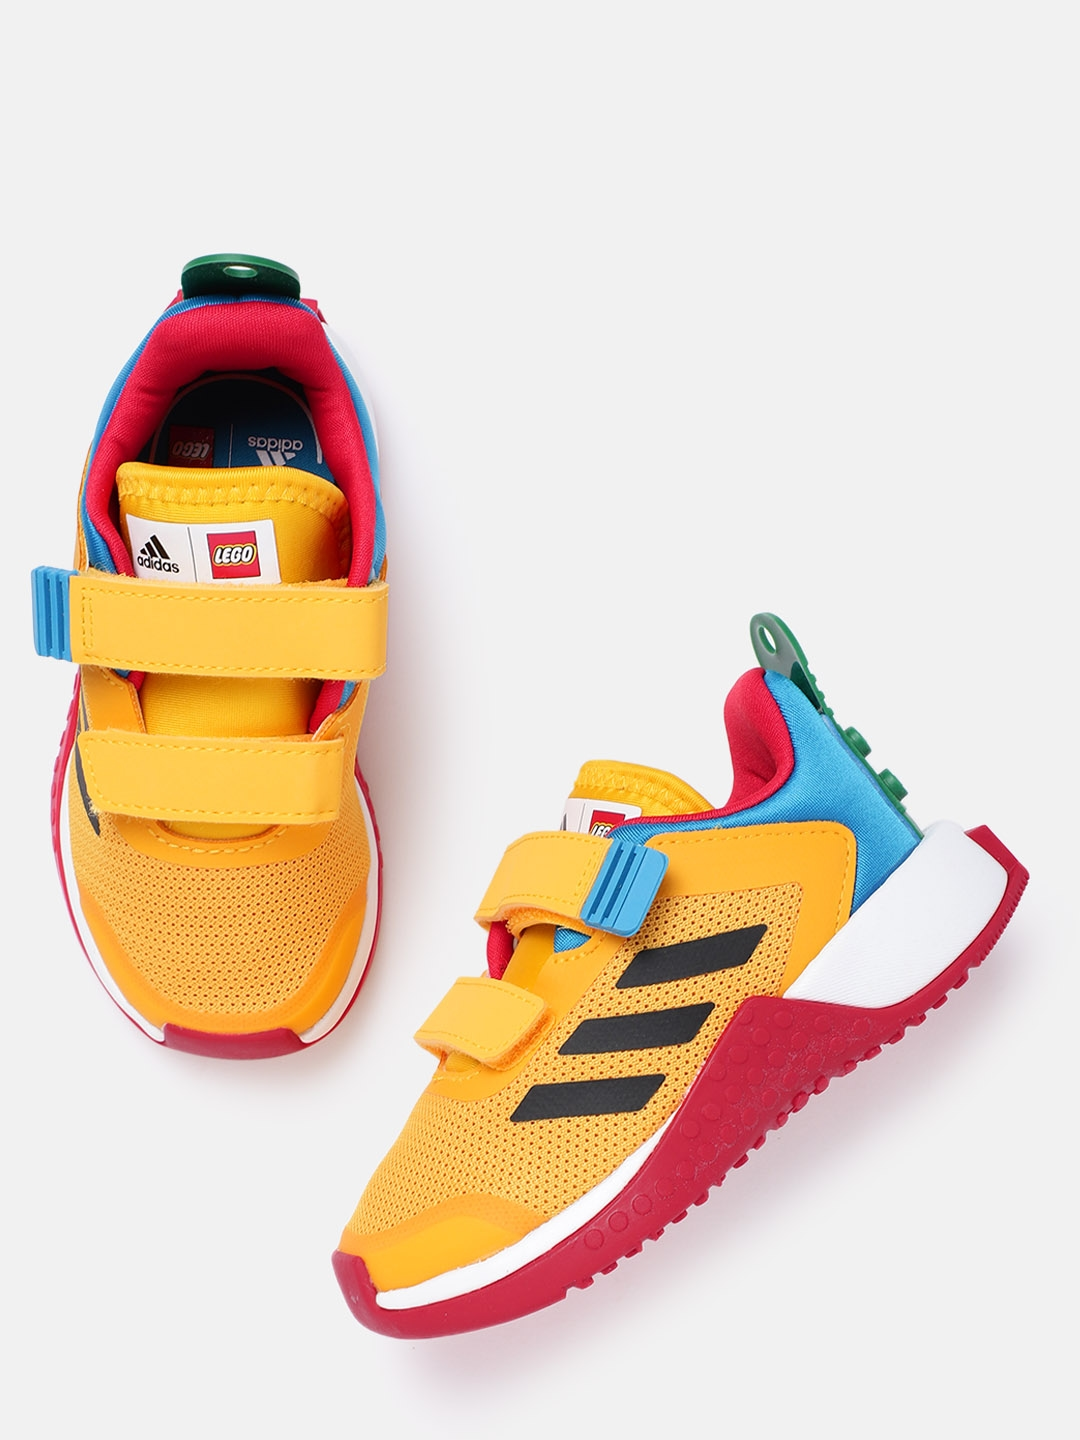 ADIDAS Kids Yellow   Blue Woven Design Lego EXPLORER CF Sustainable Running Shoes